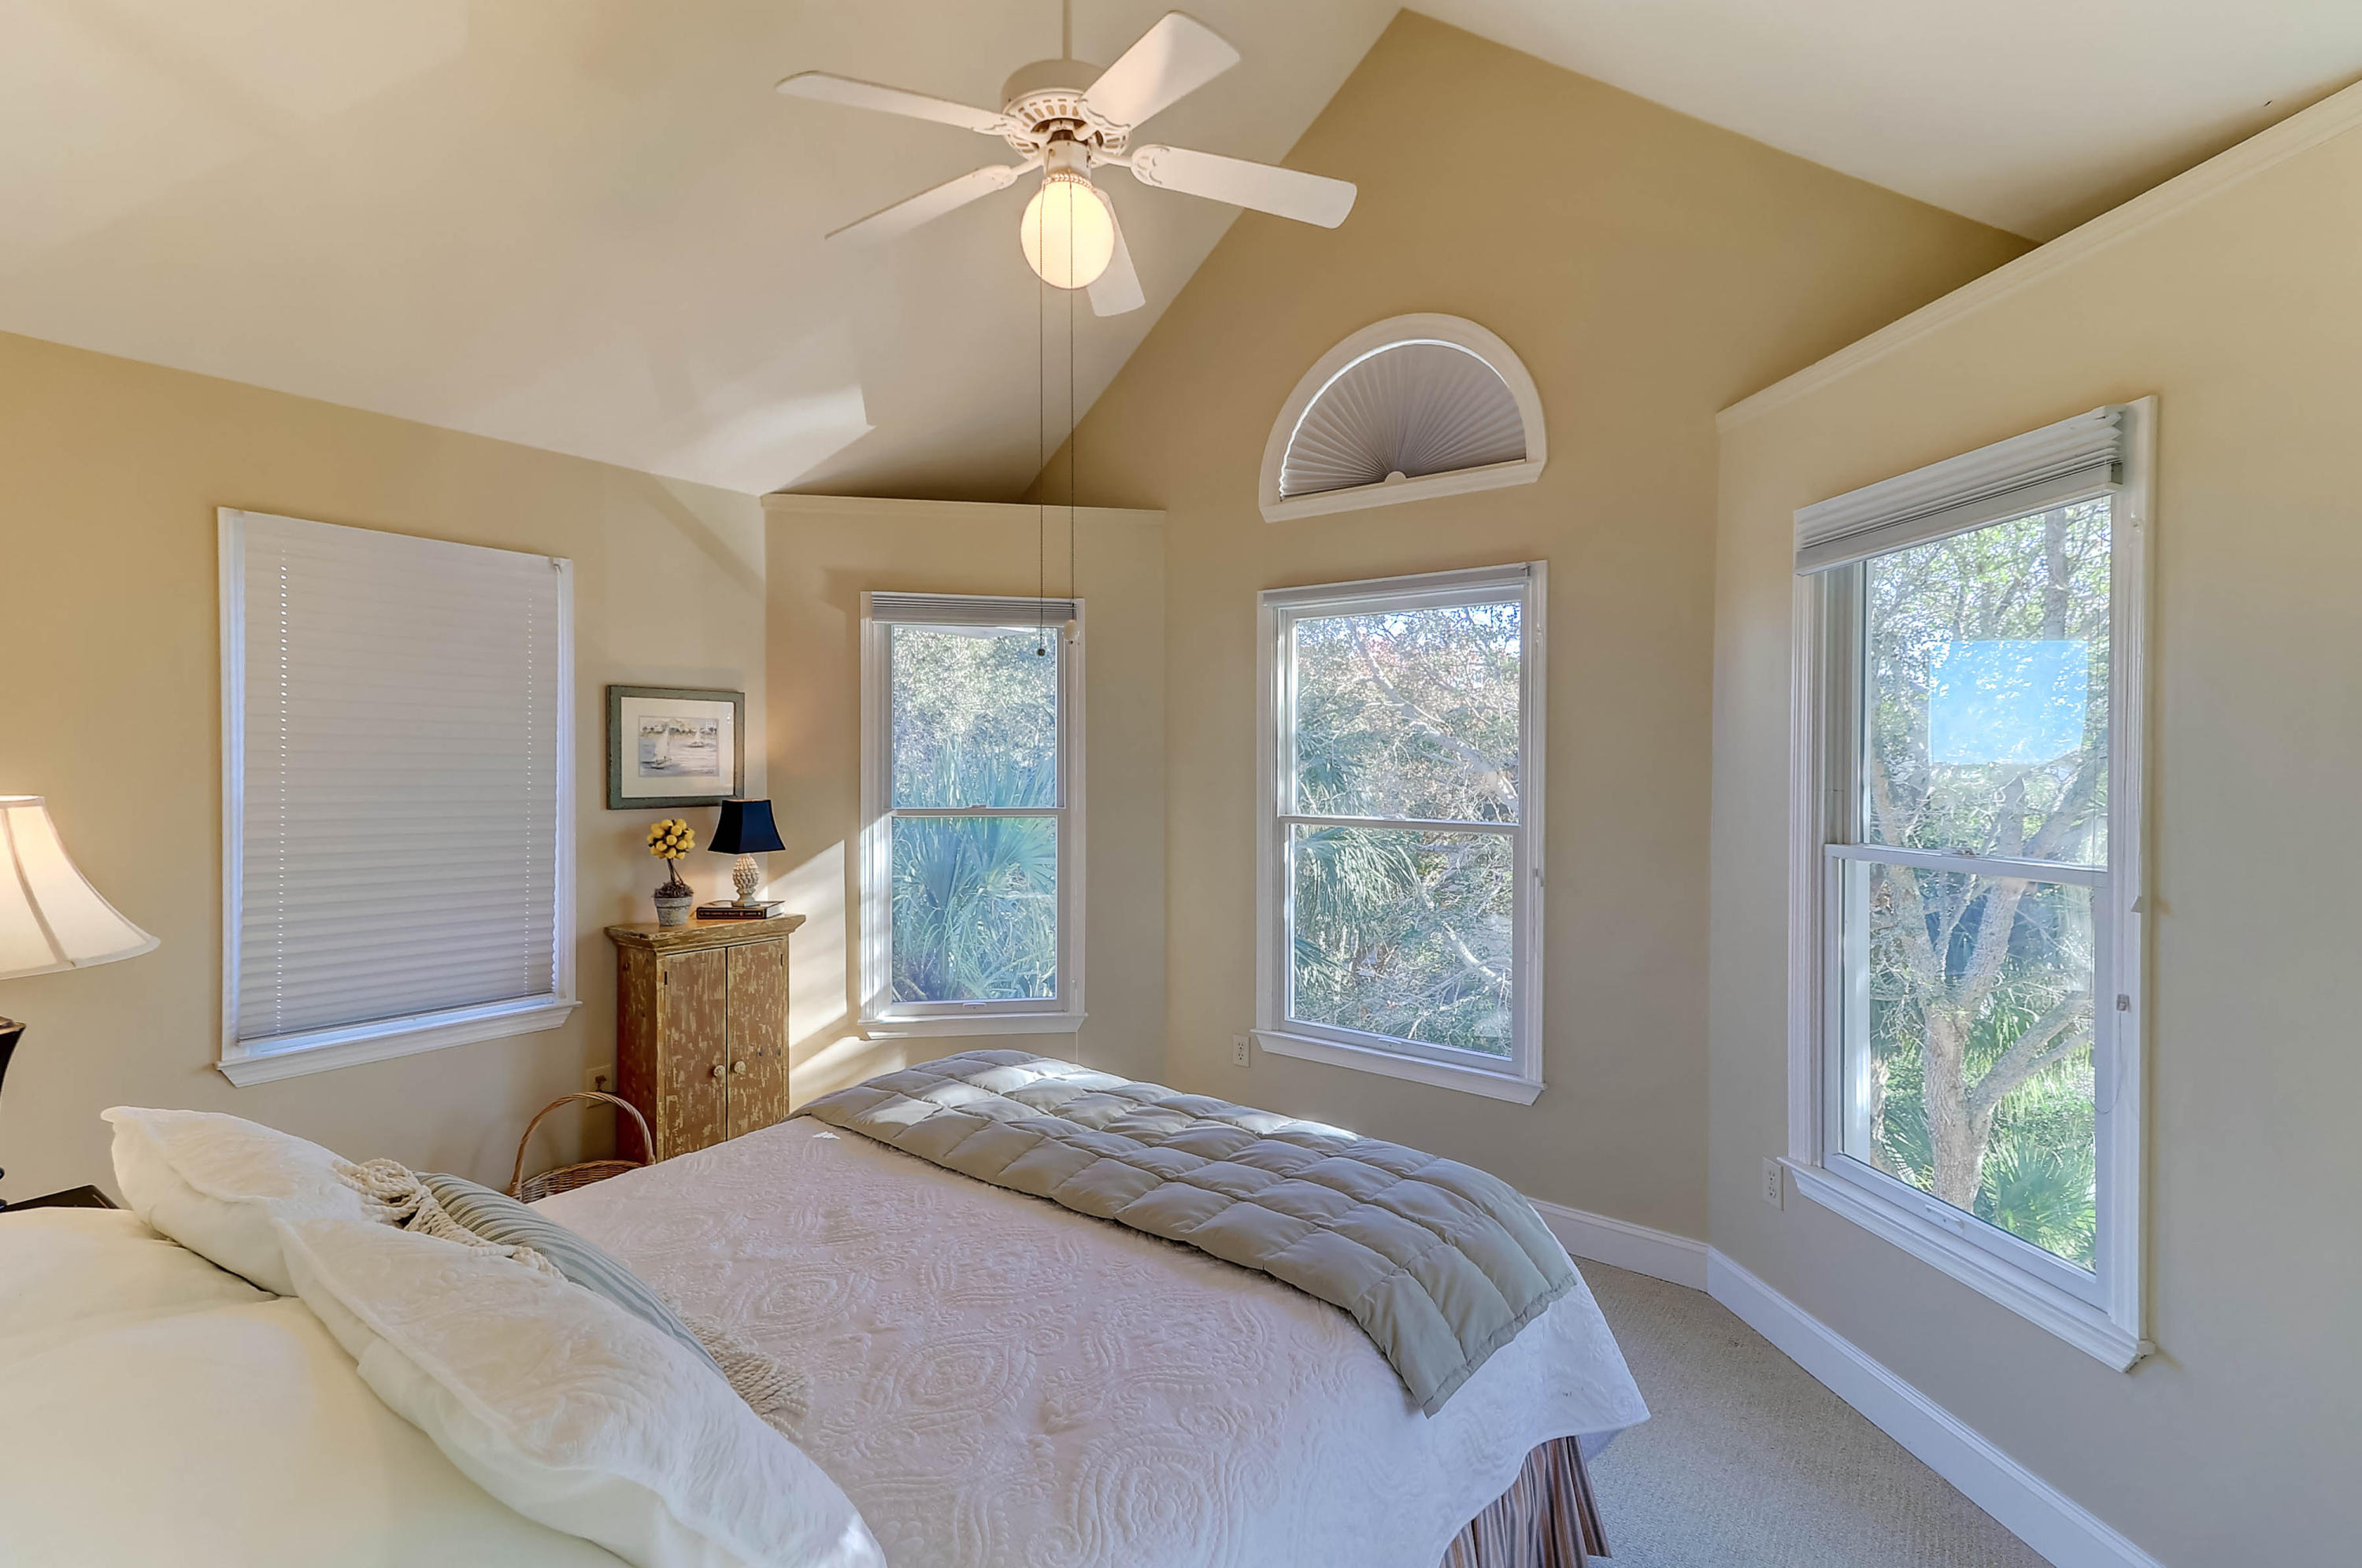 Wild Dunes Homes For Sale - 18 Morgan Place, Isle of Palms, SC - 22